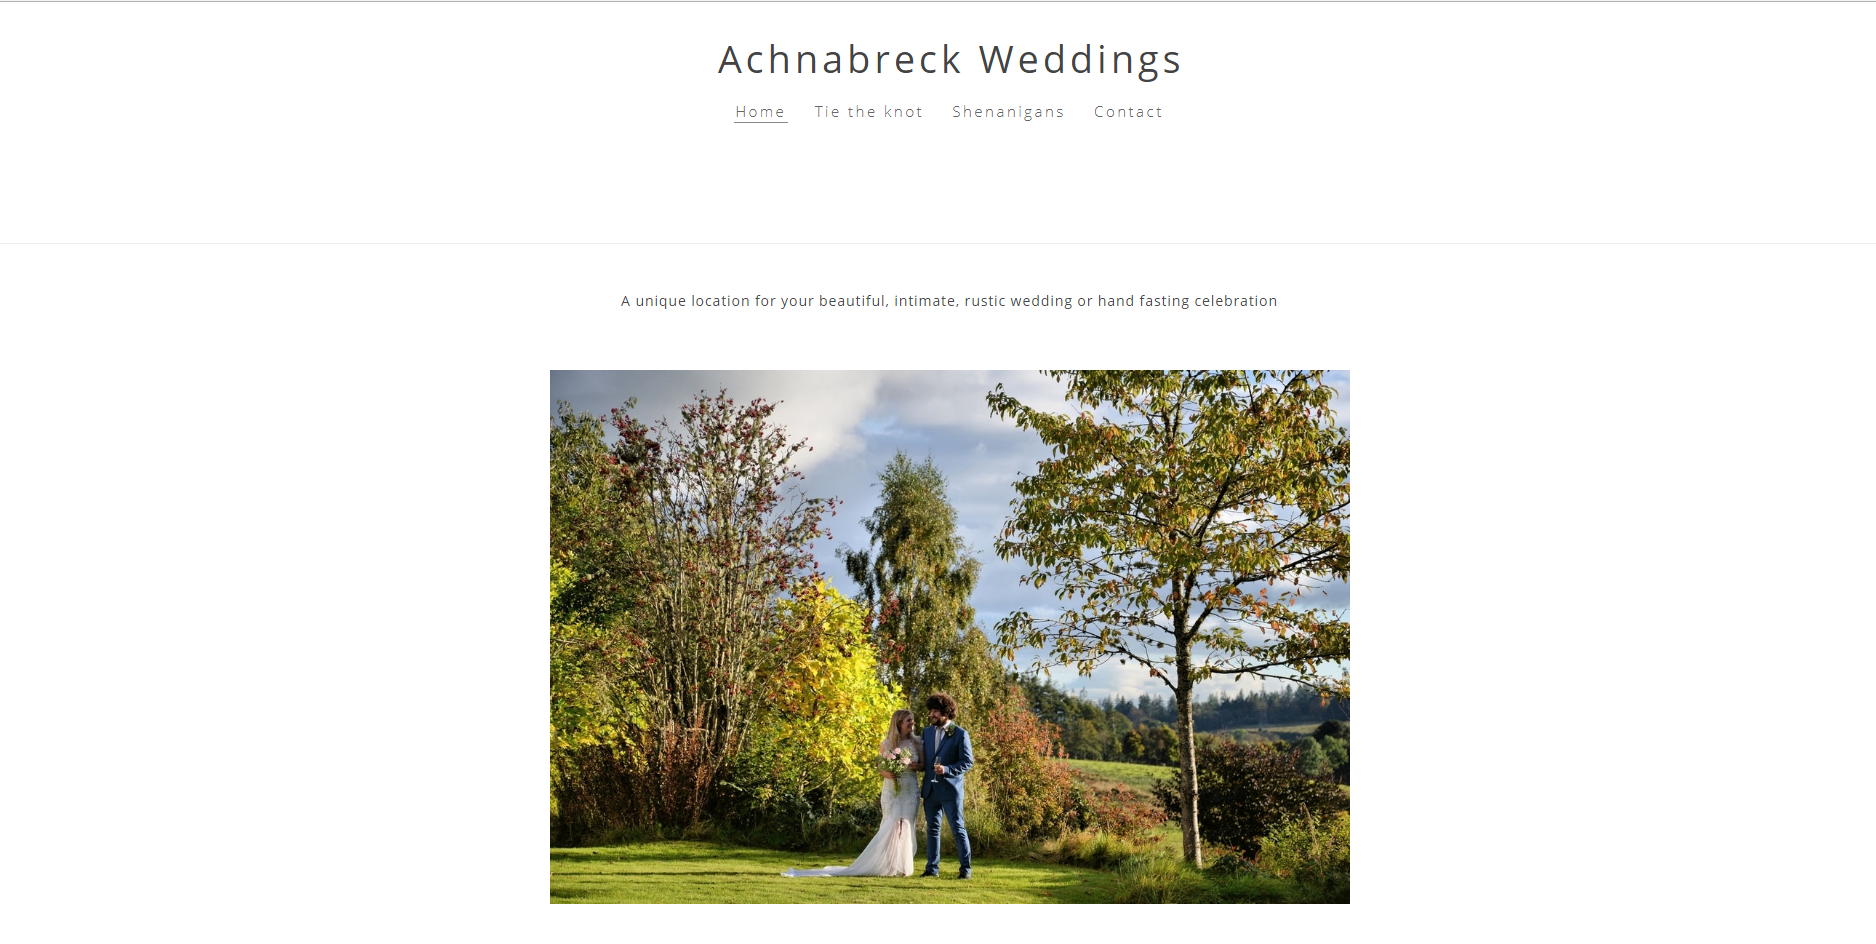 Achnabreck Weddings - Photo shoot & event styling. Simple & reflective web design. Social media platform set up. CLOSED